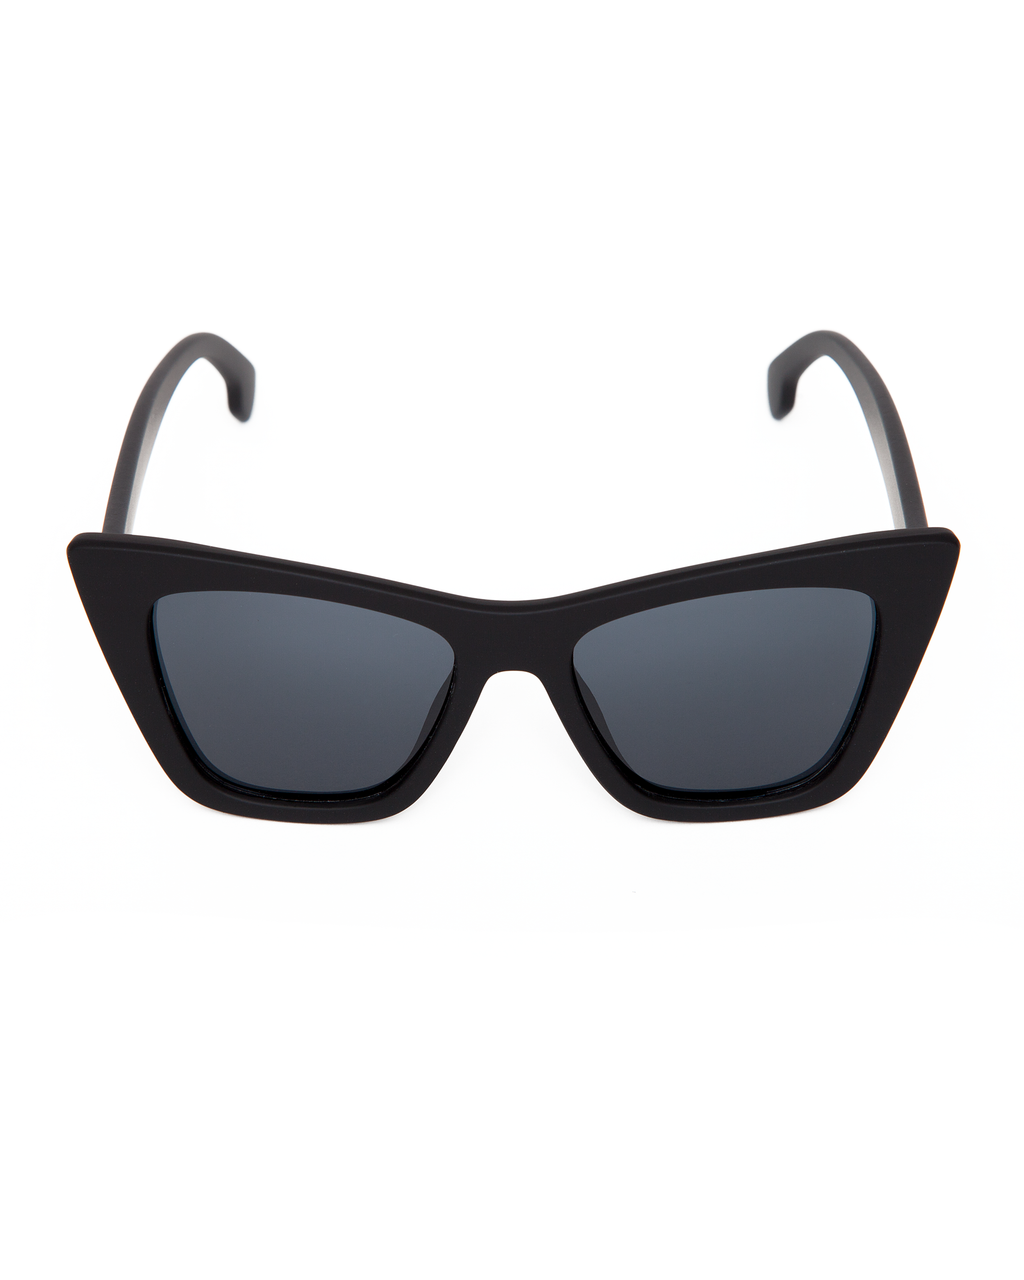 Bewitched Sunglasses Matte Black Frame with Black Smoke Lens - Mini Atomic Totes